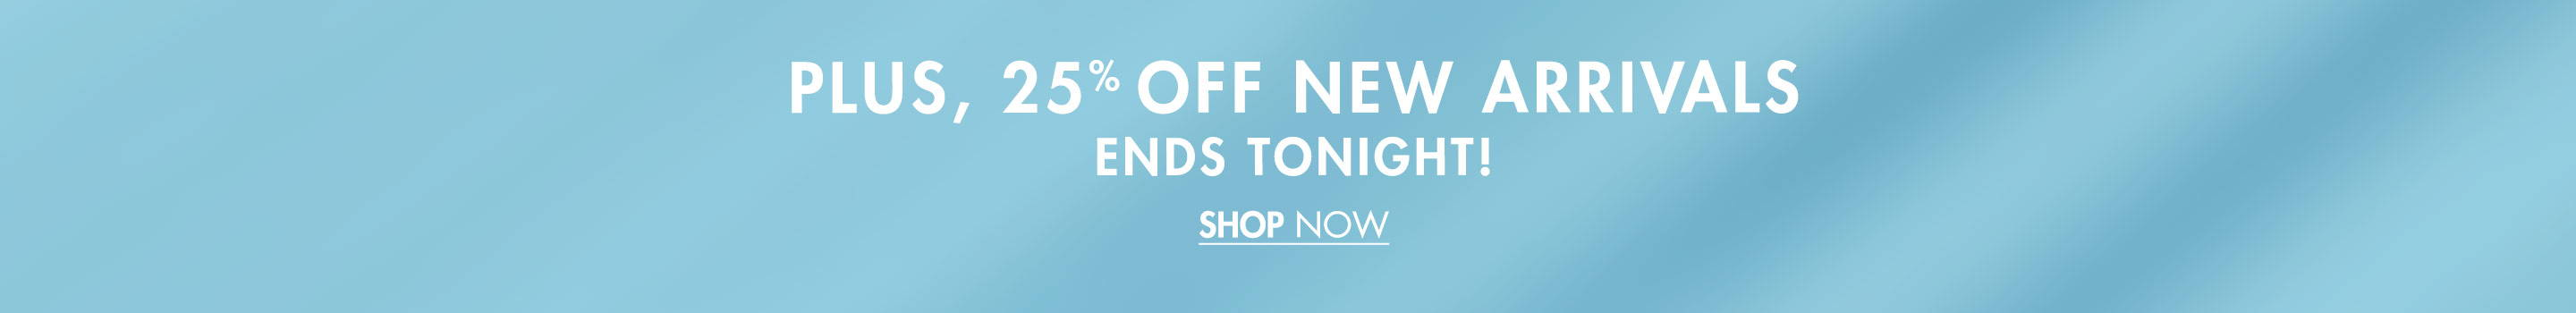 25% Off New Arrivals